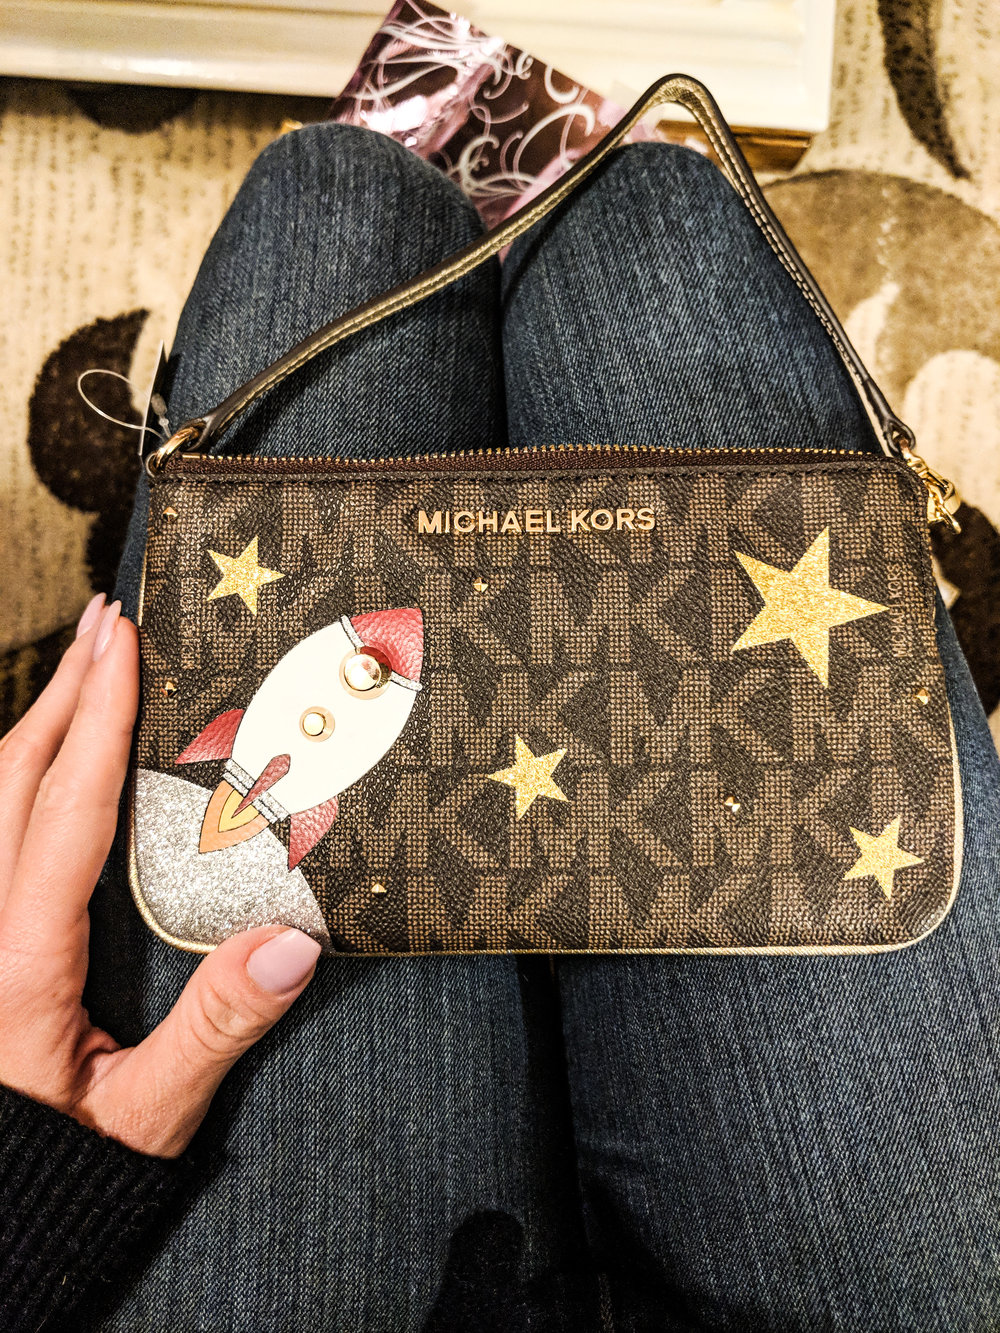 Rocket Clutch   Michael Kors limited edition rocket clutch - if this is sold out on Amazon - check Ebay!